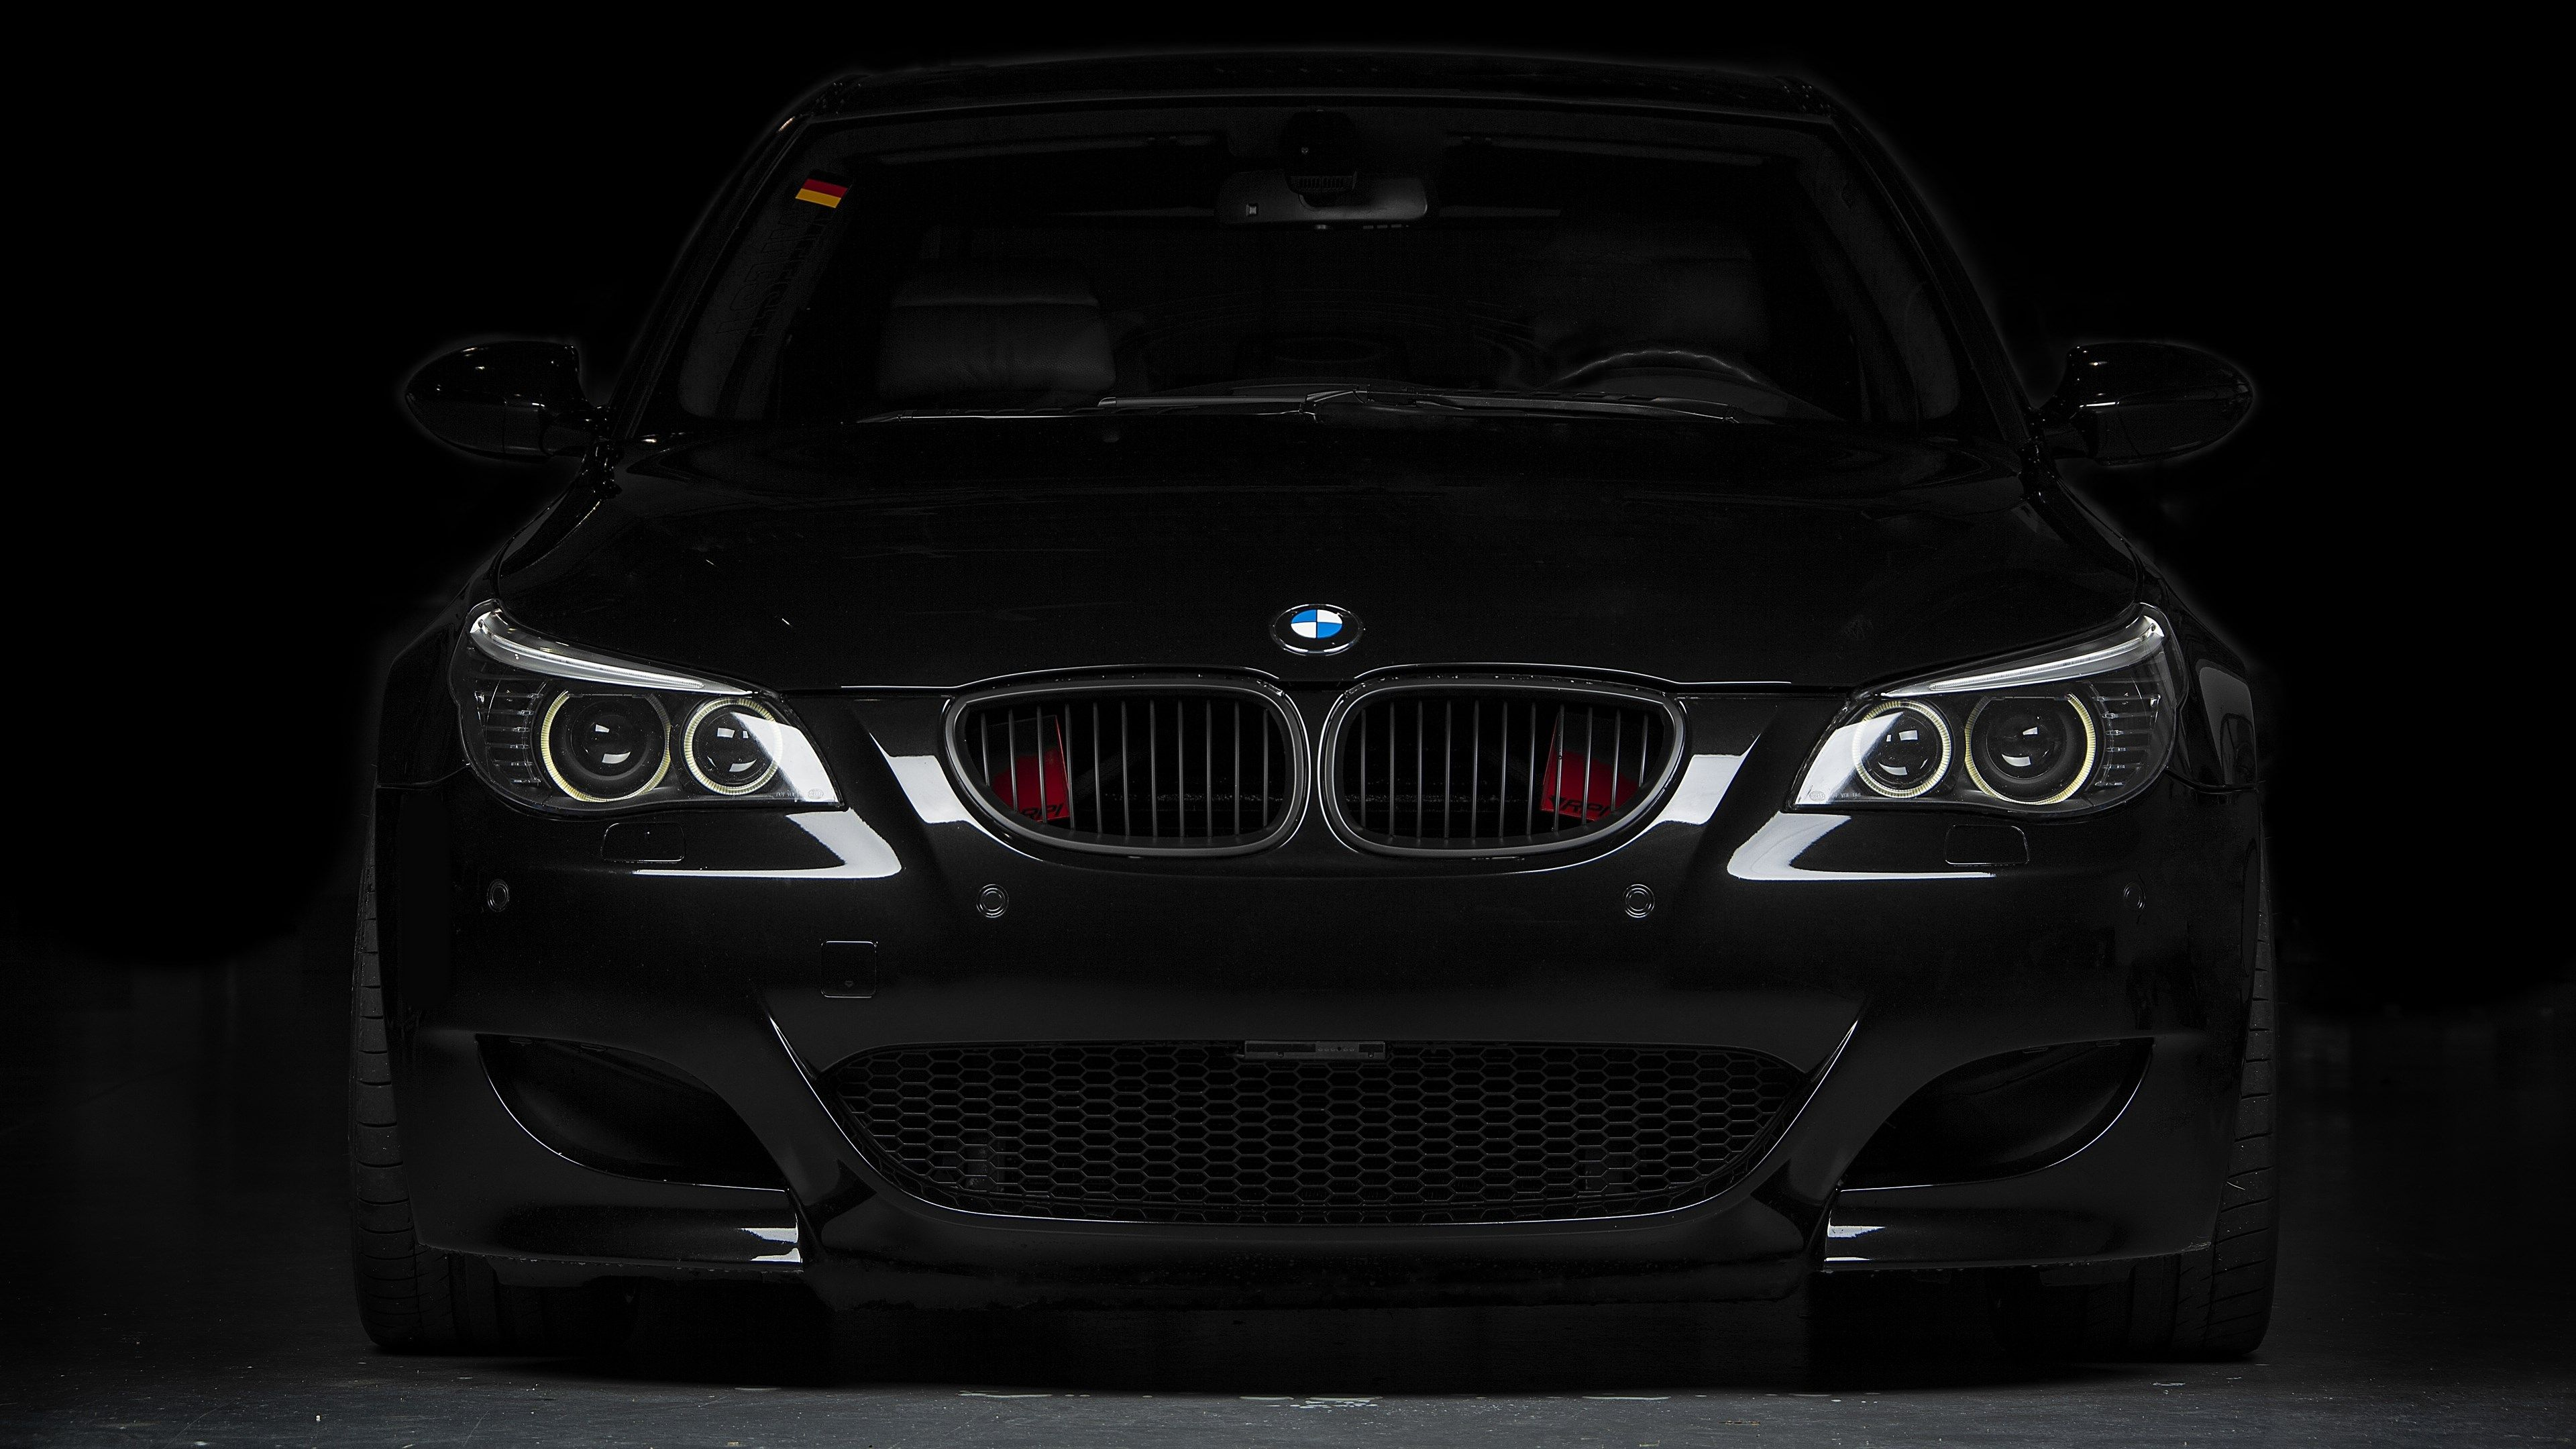 4k Wallpaper For Desktop Hd 3840x2160 Bmw Wallpapers Bmw M5